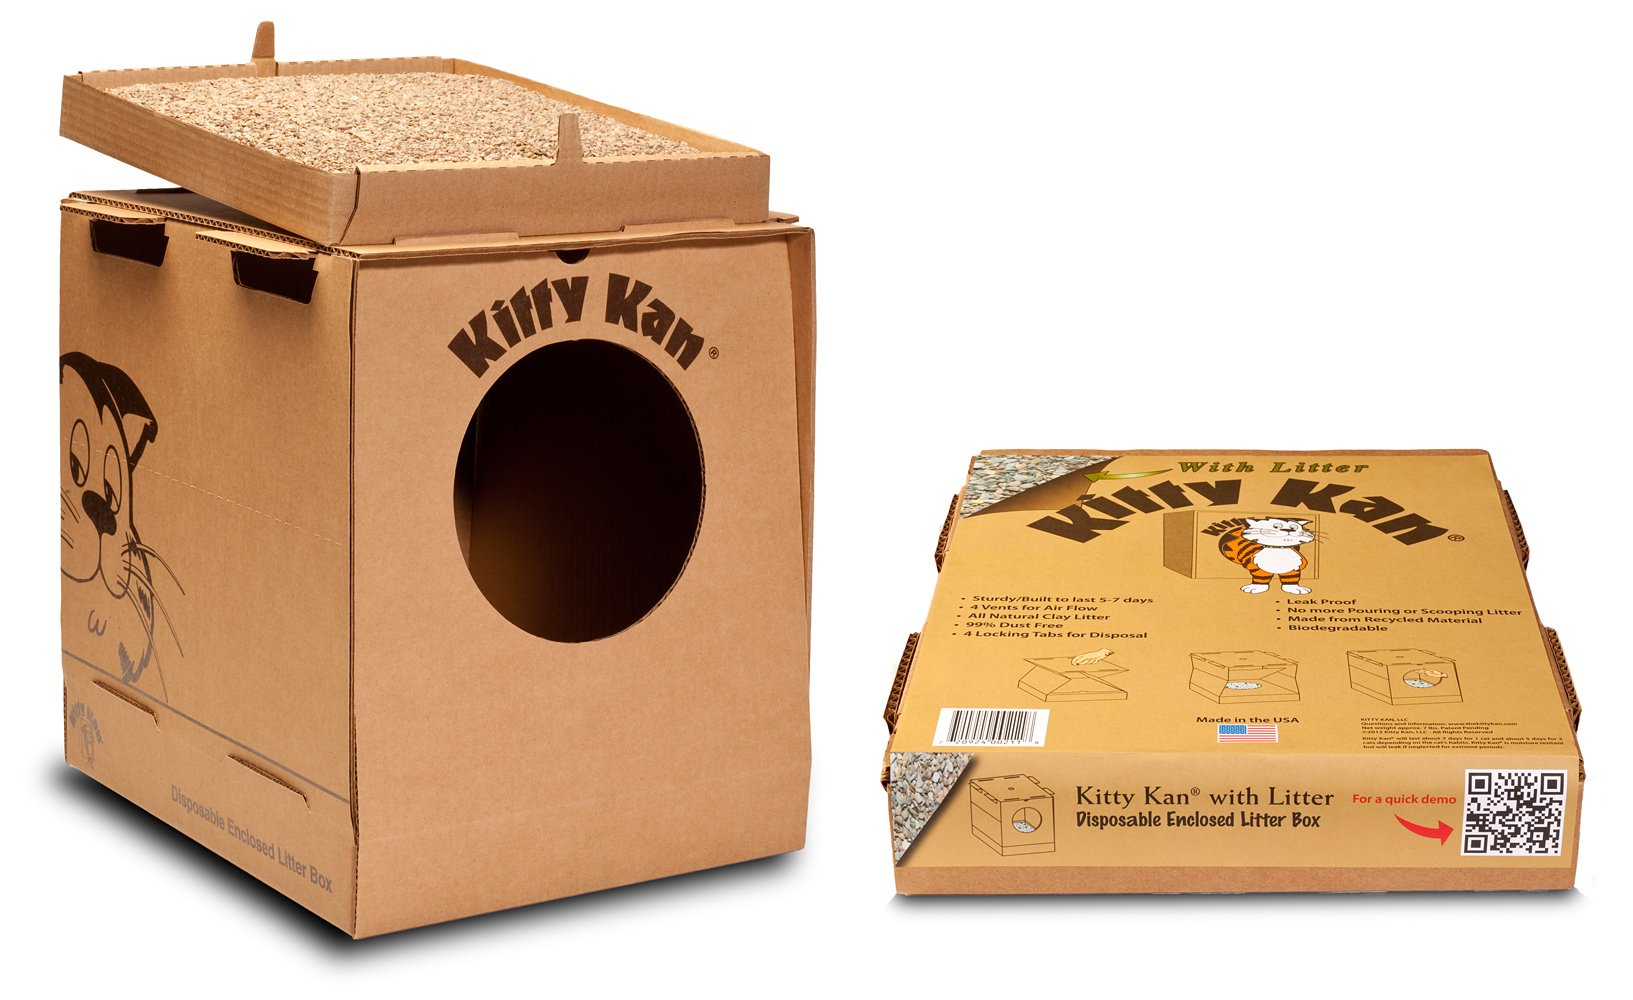 Kitty Kan with Litter Quality Disposable Enclosed Litter Box by Kitty Kan